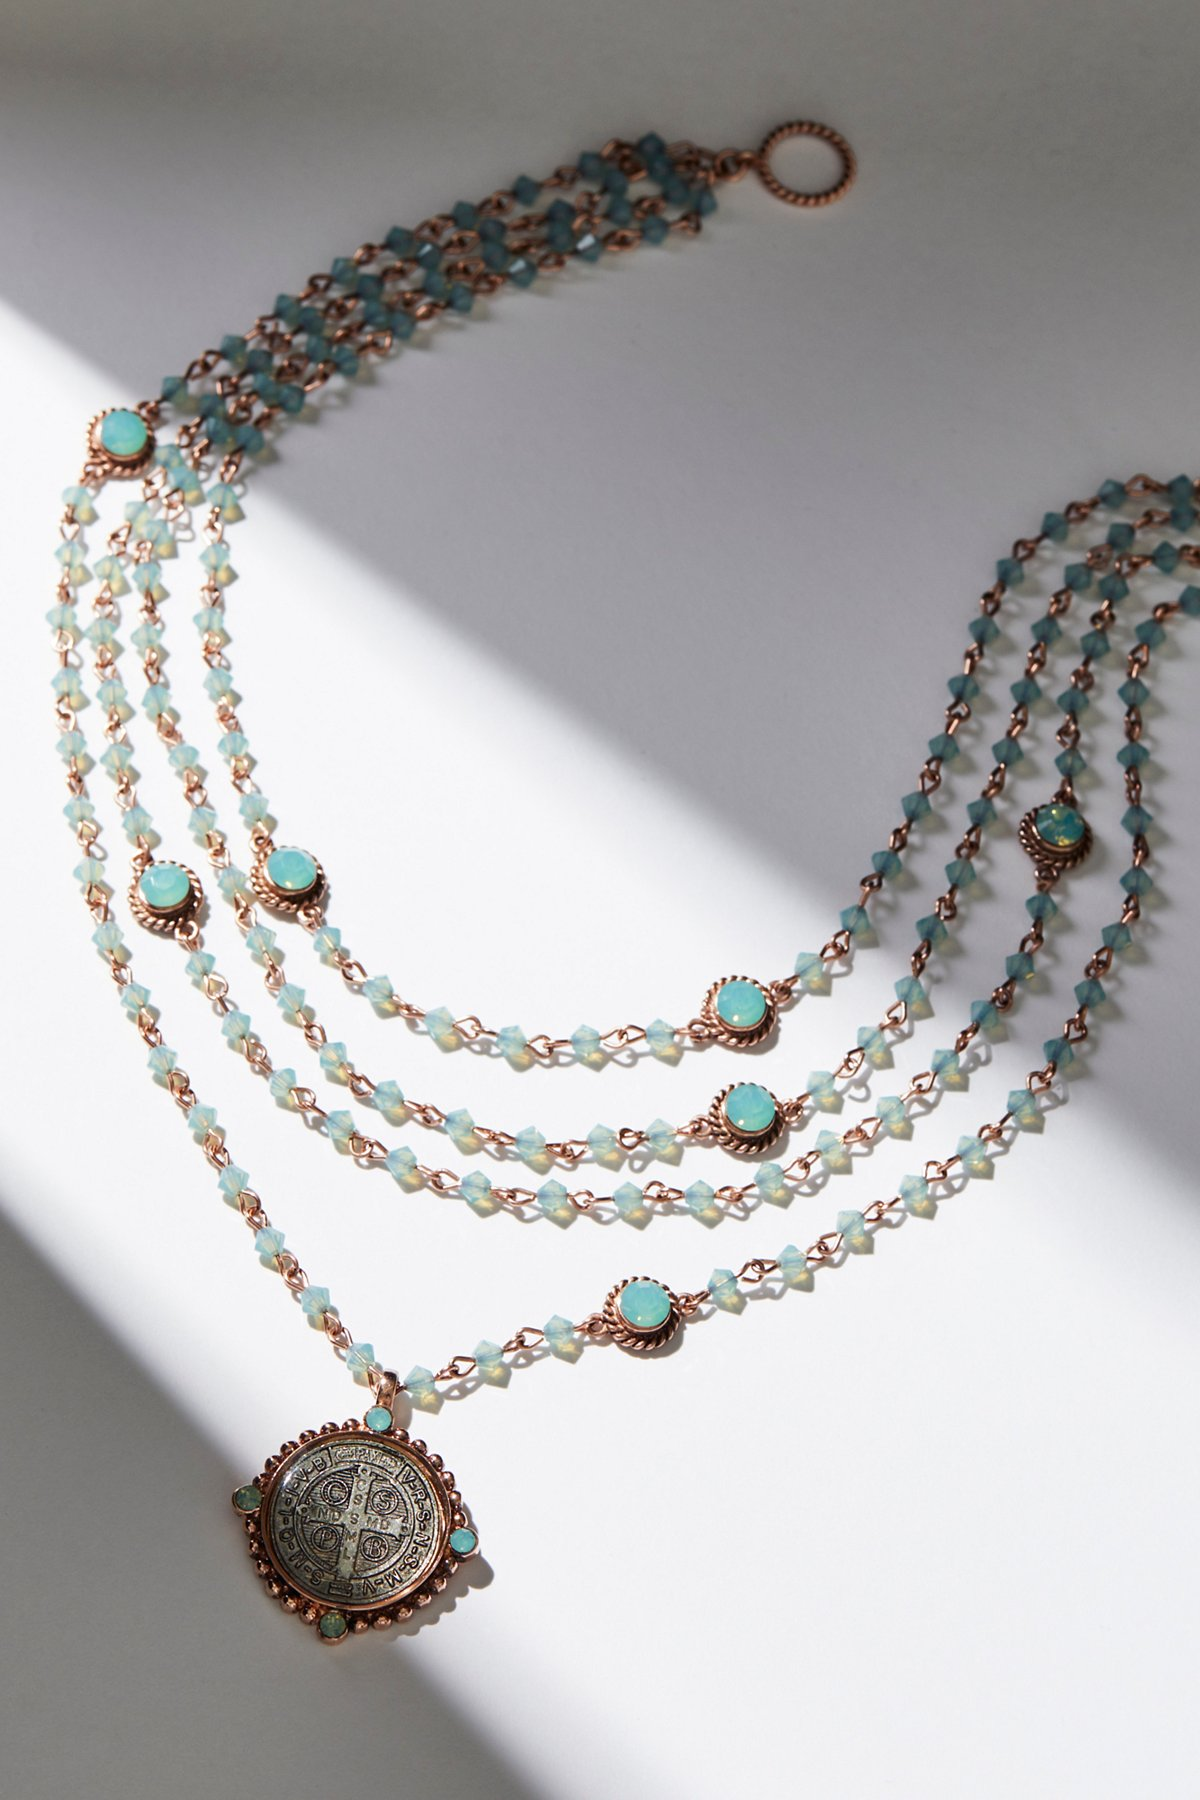 San Benito Opal Medallion Necklace